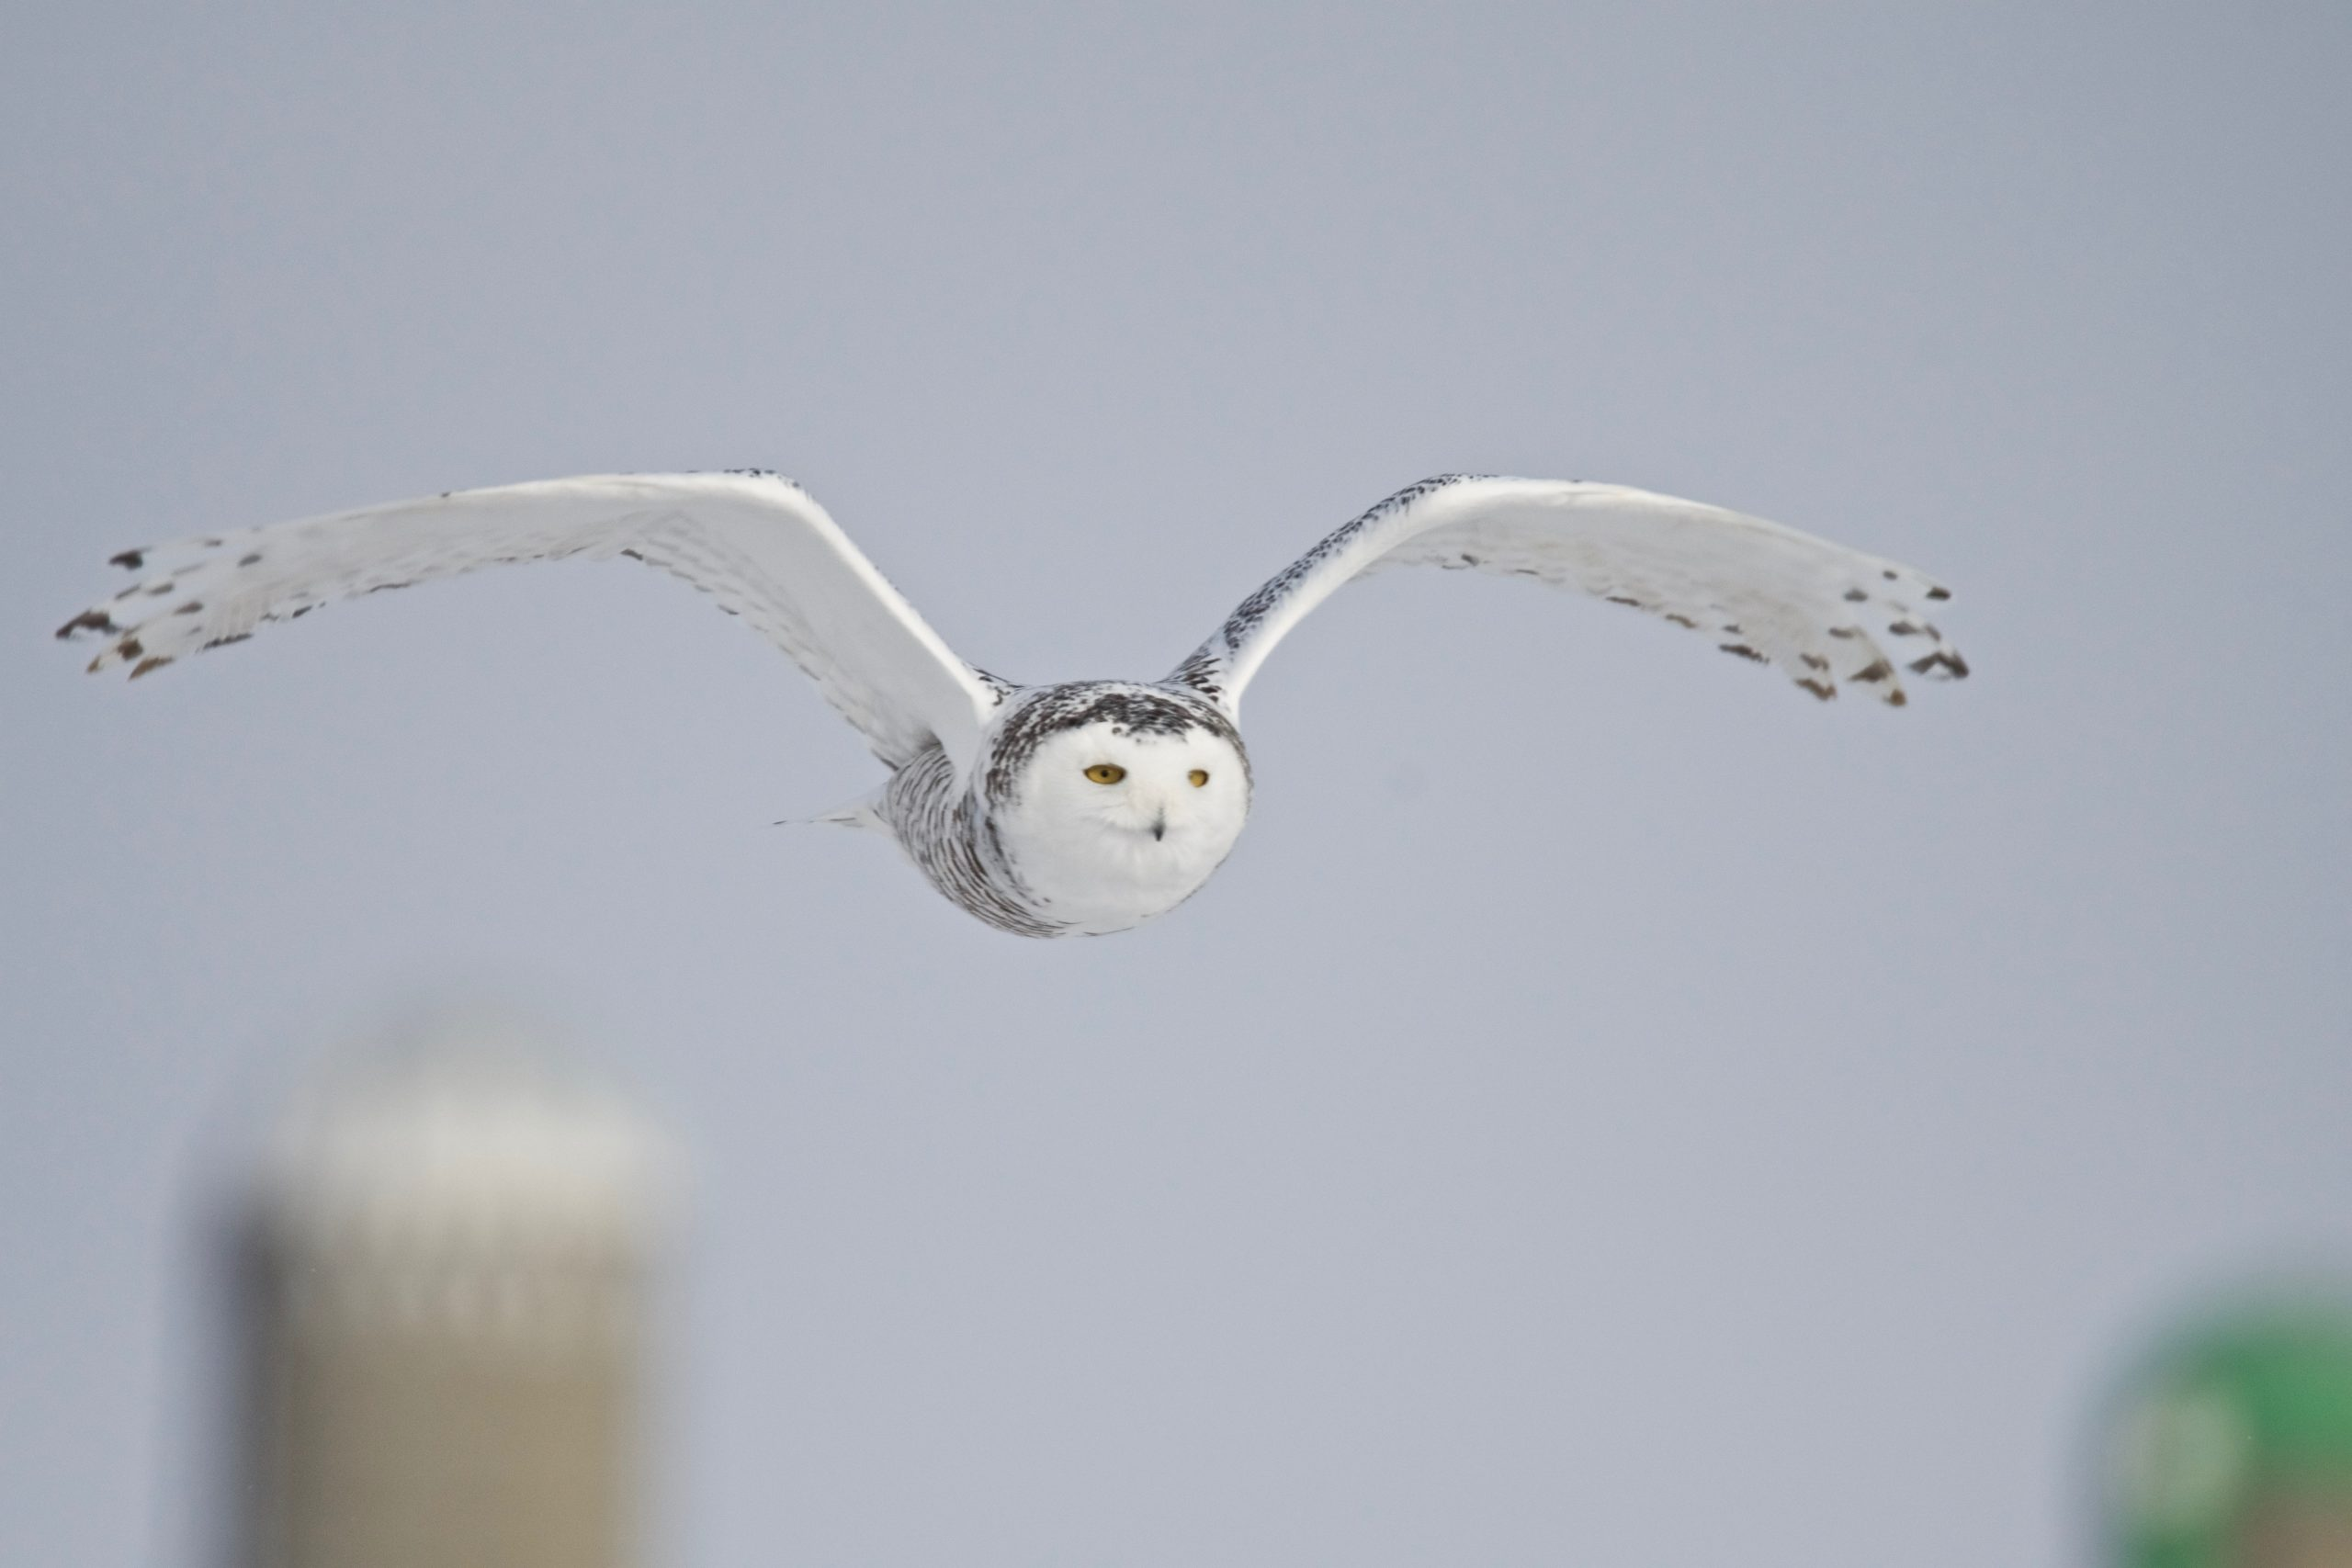 How To Photograph Snowy Owls